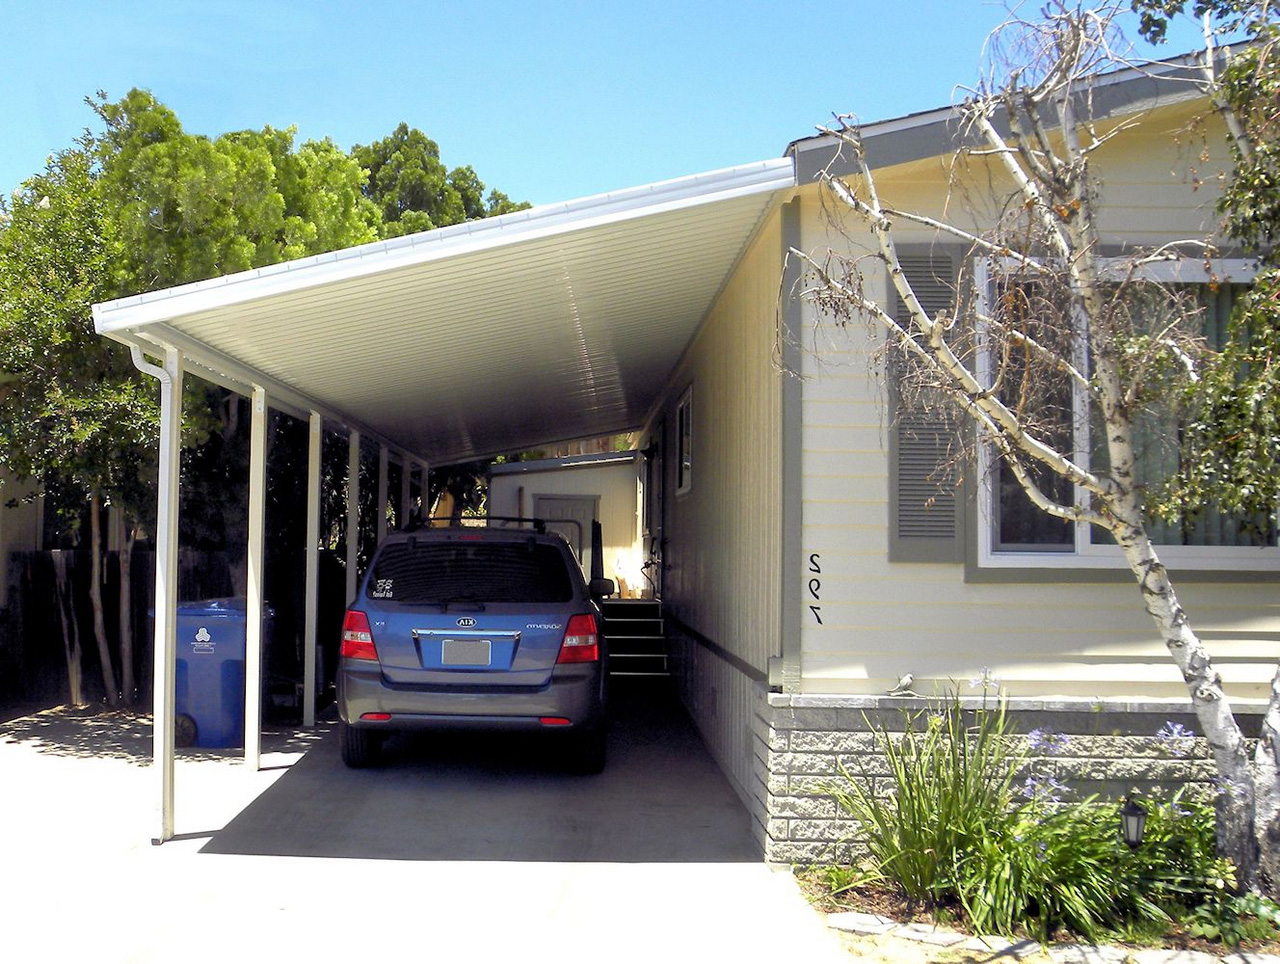 Building a Carport-attached-carport-designs-carport garage